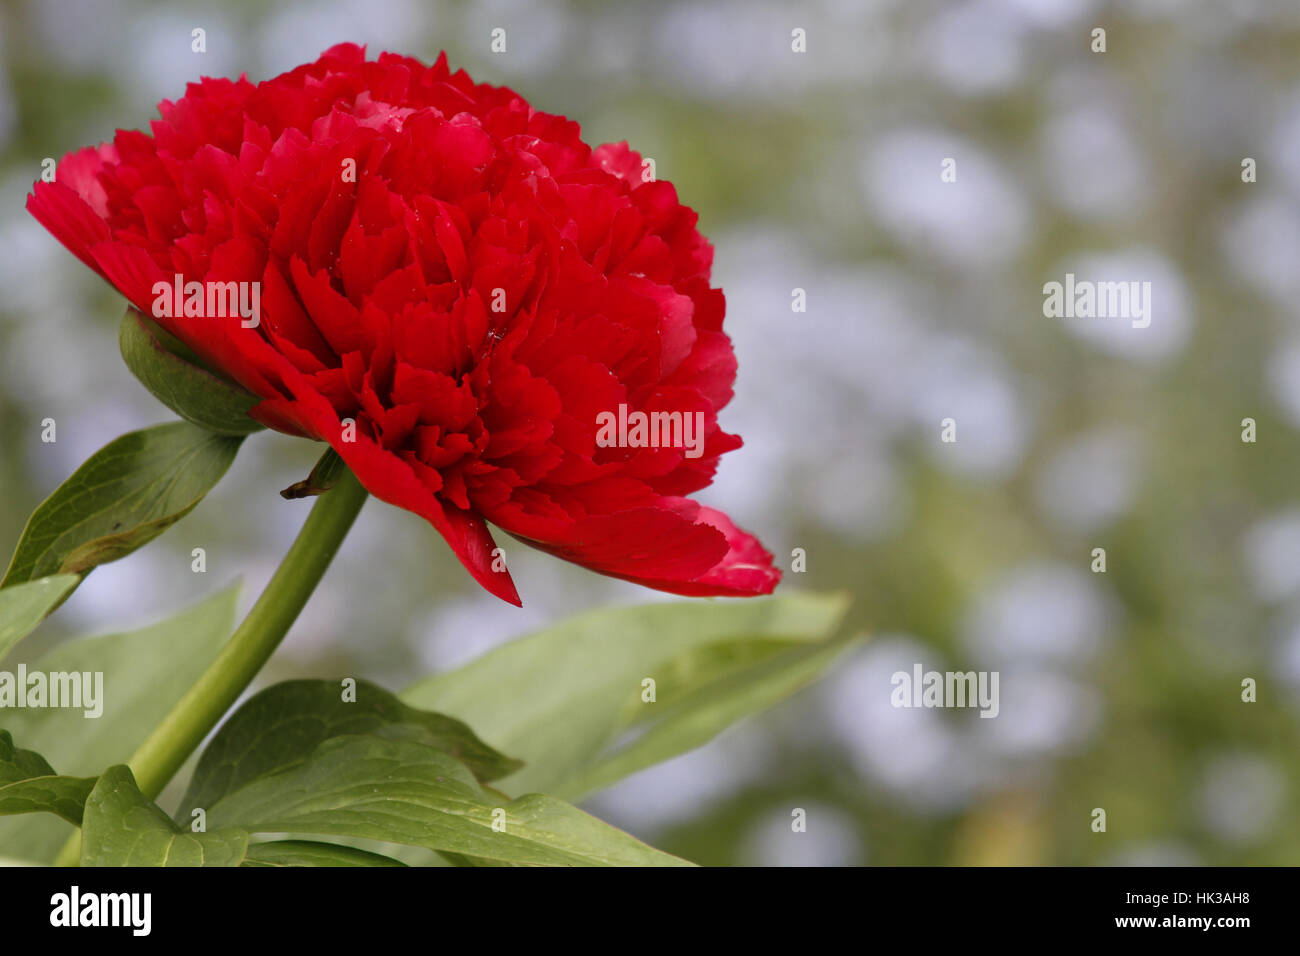 flower, plant, peony, romanticism, red, garden, flower, plant, peony, romantic, Stock Photo